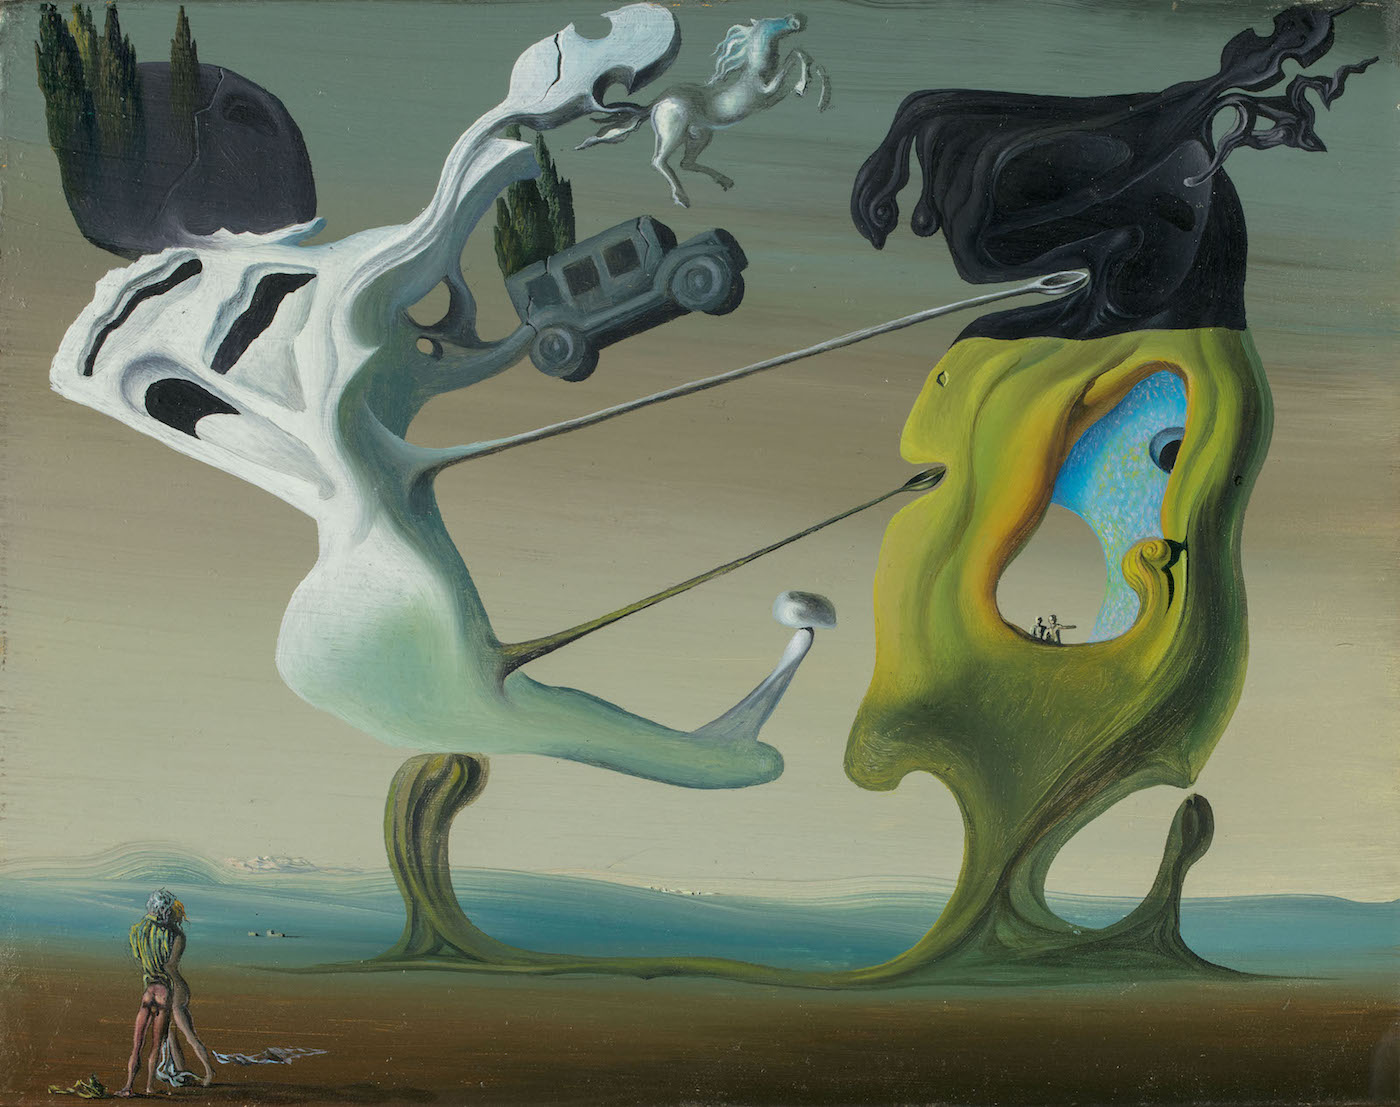 https://hyperallergic.com/426606/salvador-dali-paintings-london-auction/